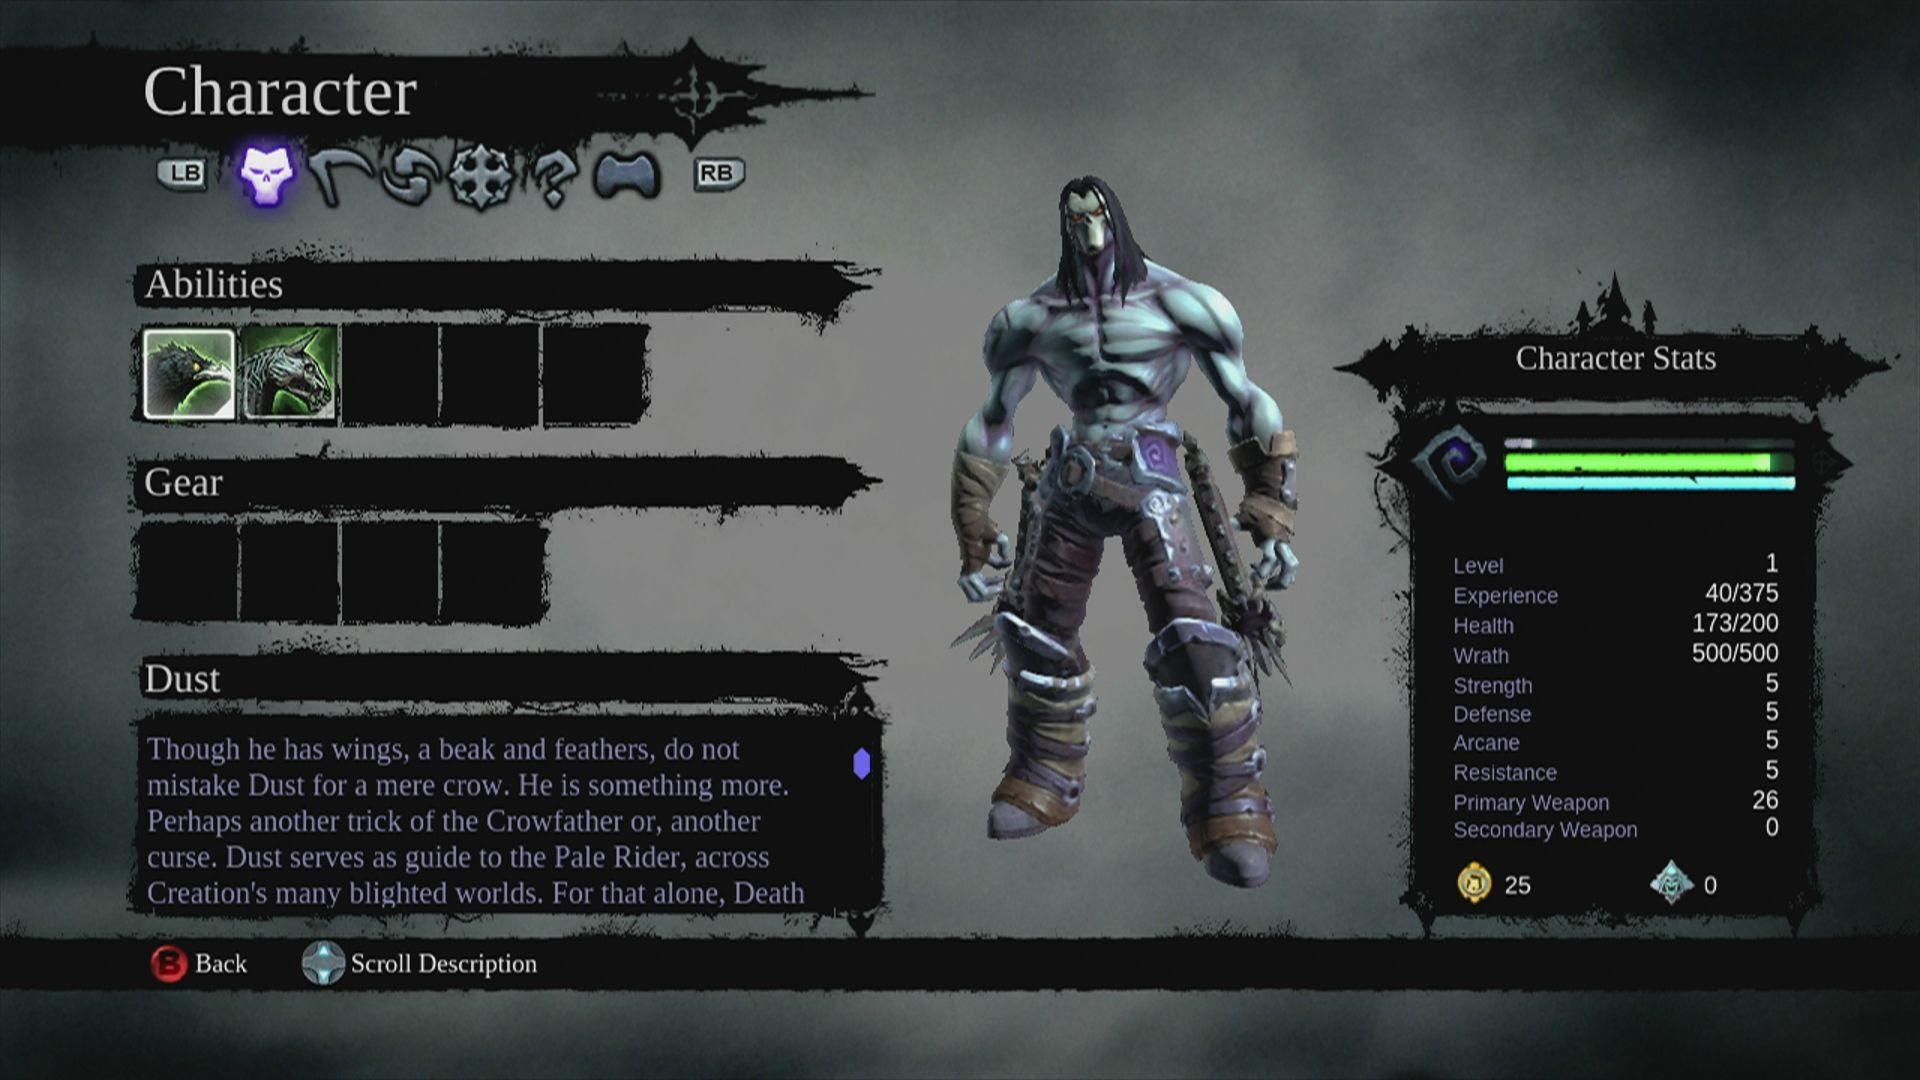 Darksiders II Xbox 360 Abilities screen